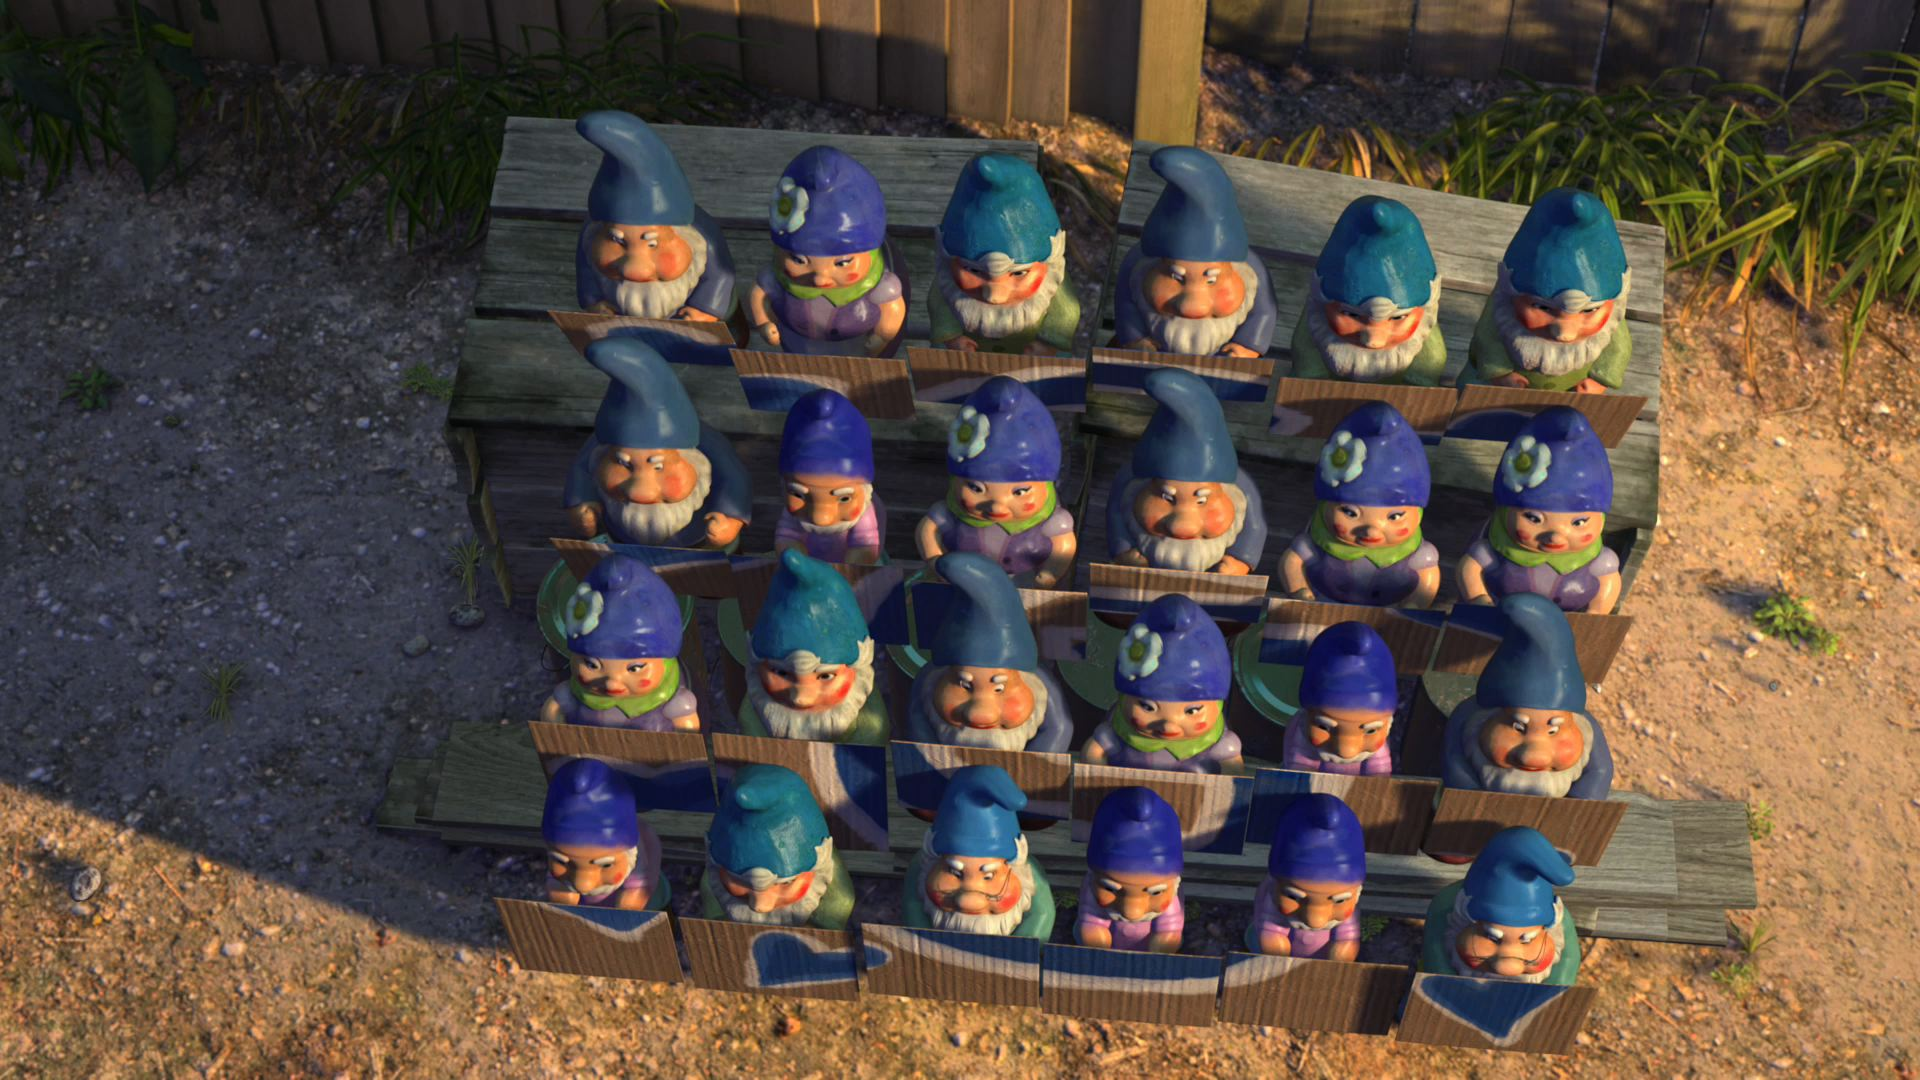 The Blues (Gnomeo & Juliet)